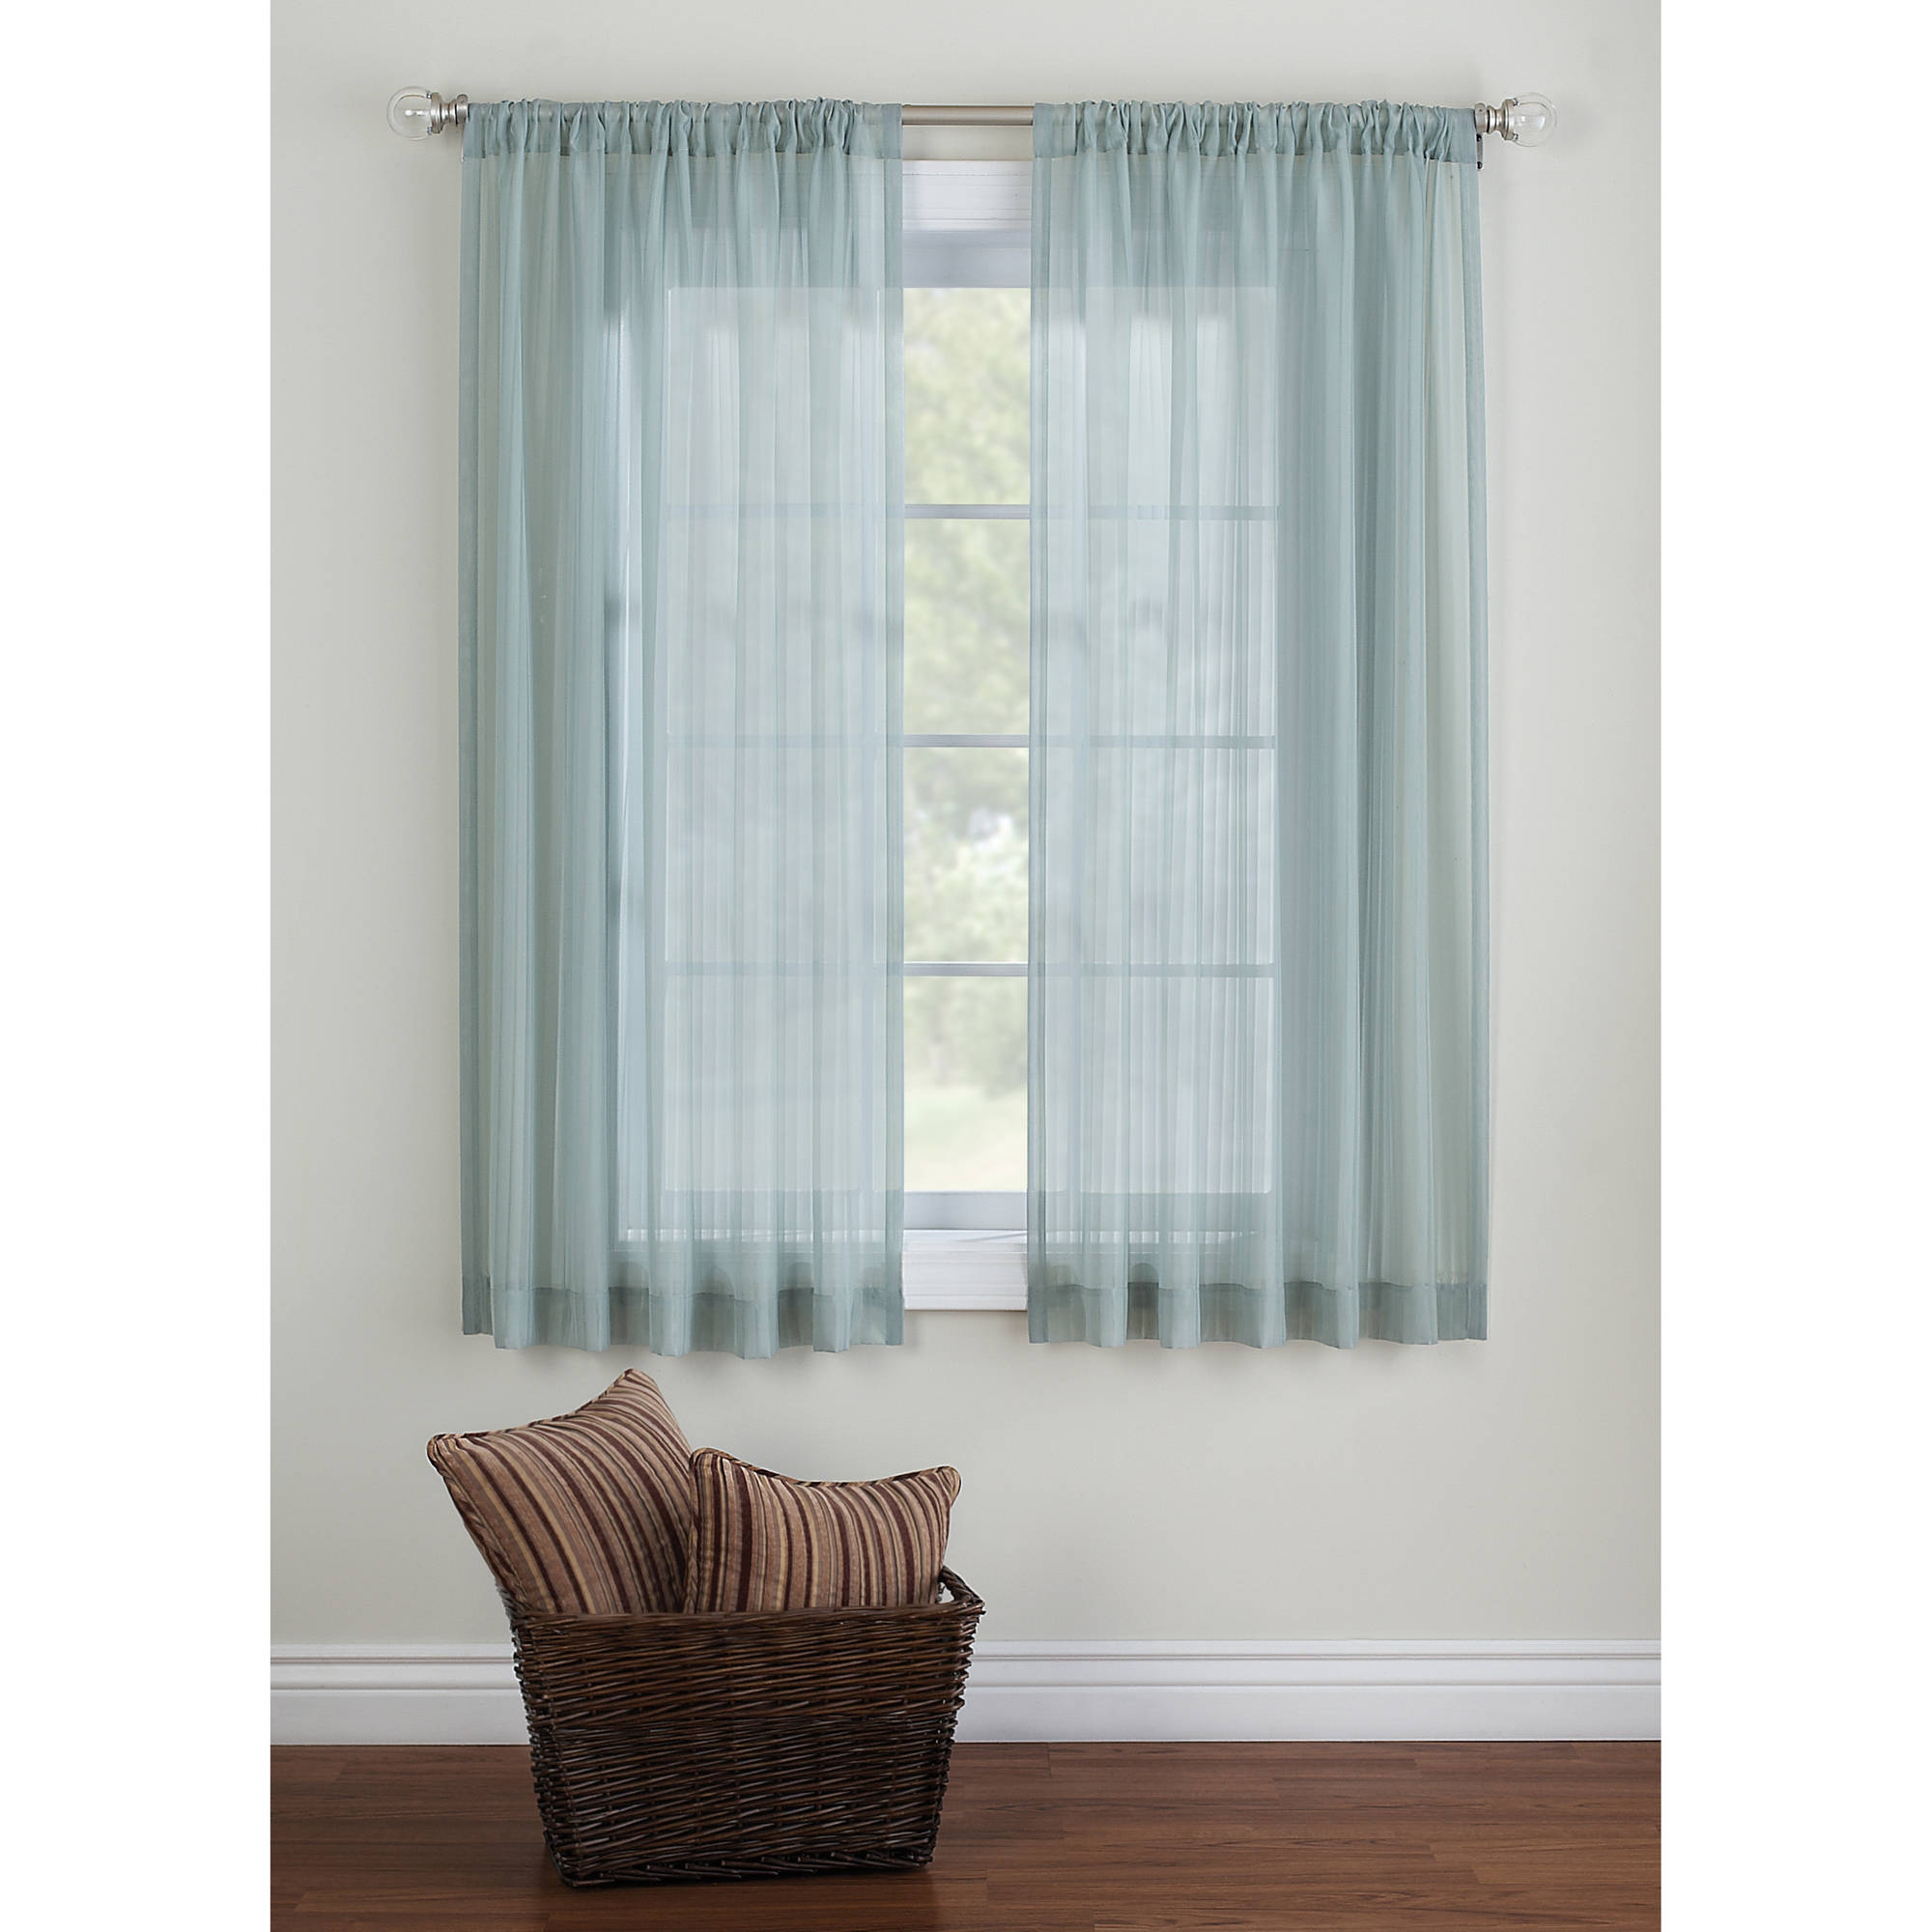 Delancey Metallic Print Sheer Grommet Window Panel Walmart For Curtains Windows (Image 18 of 25)